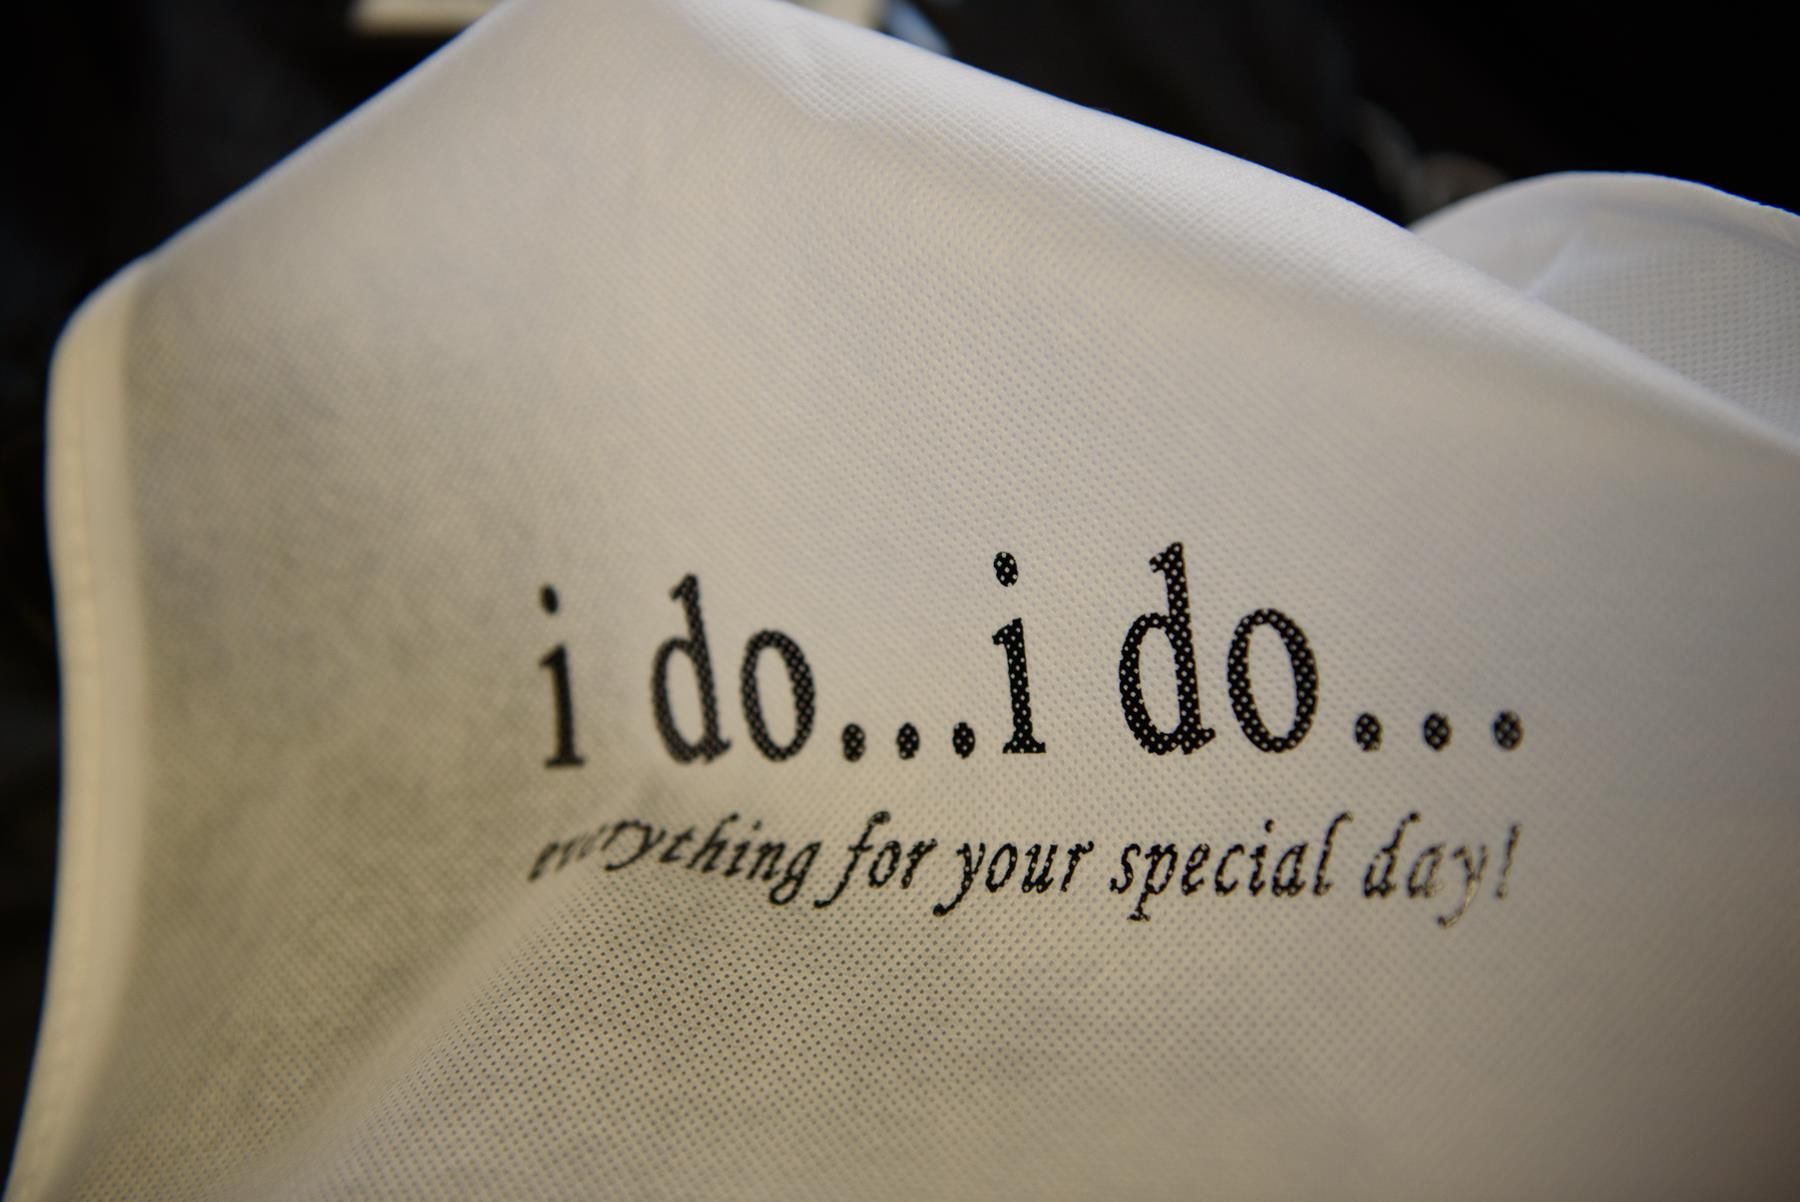 i-do-i-do-everything-for-your-special-day.jpg